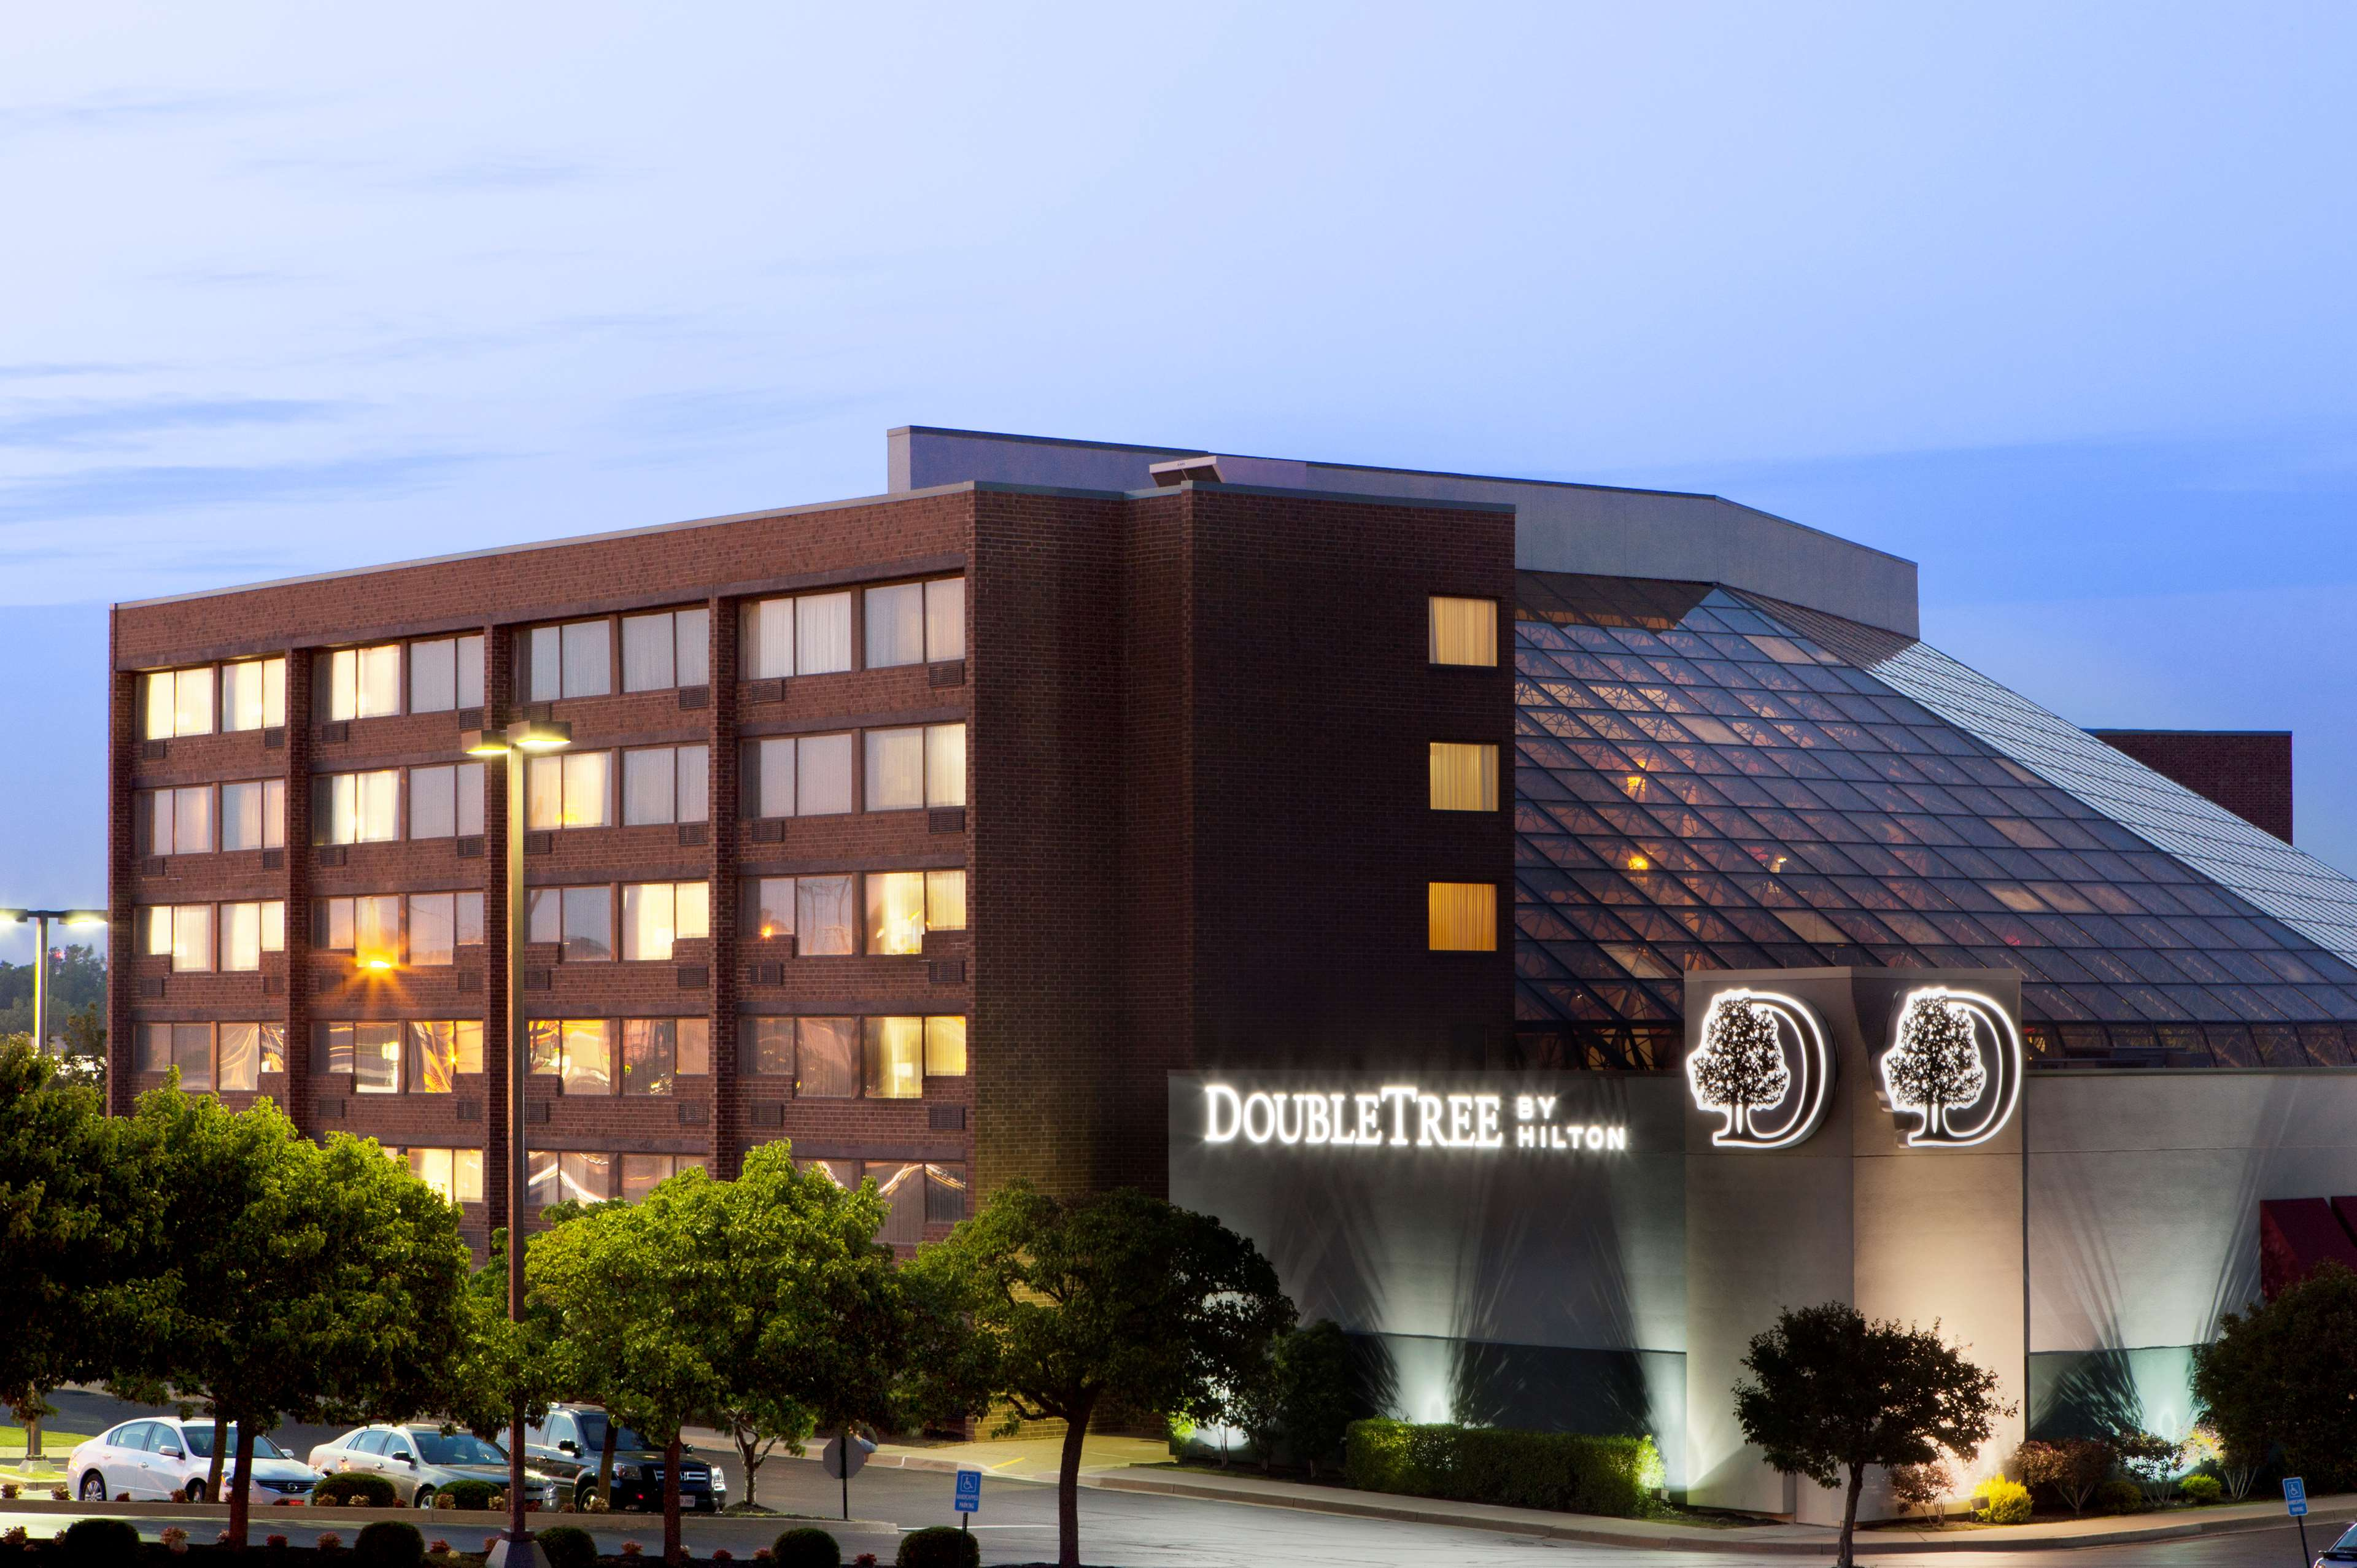 DoubleTree by Hilton Hotel Rochester